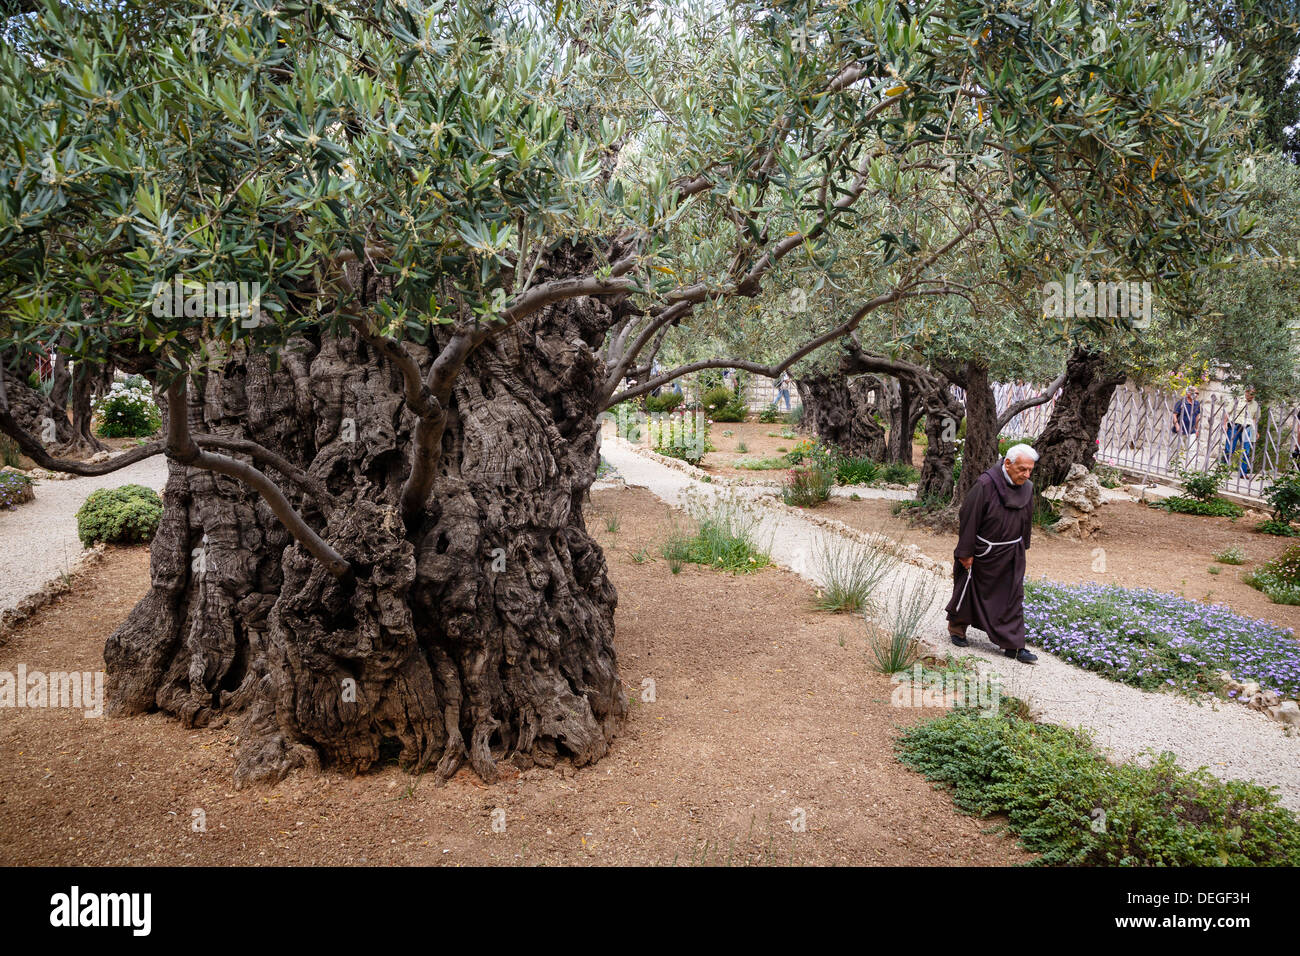 Olive Trees In The Garden Of Gethsemane, Jerusalem, Israel, Middle East    Stock